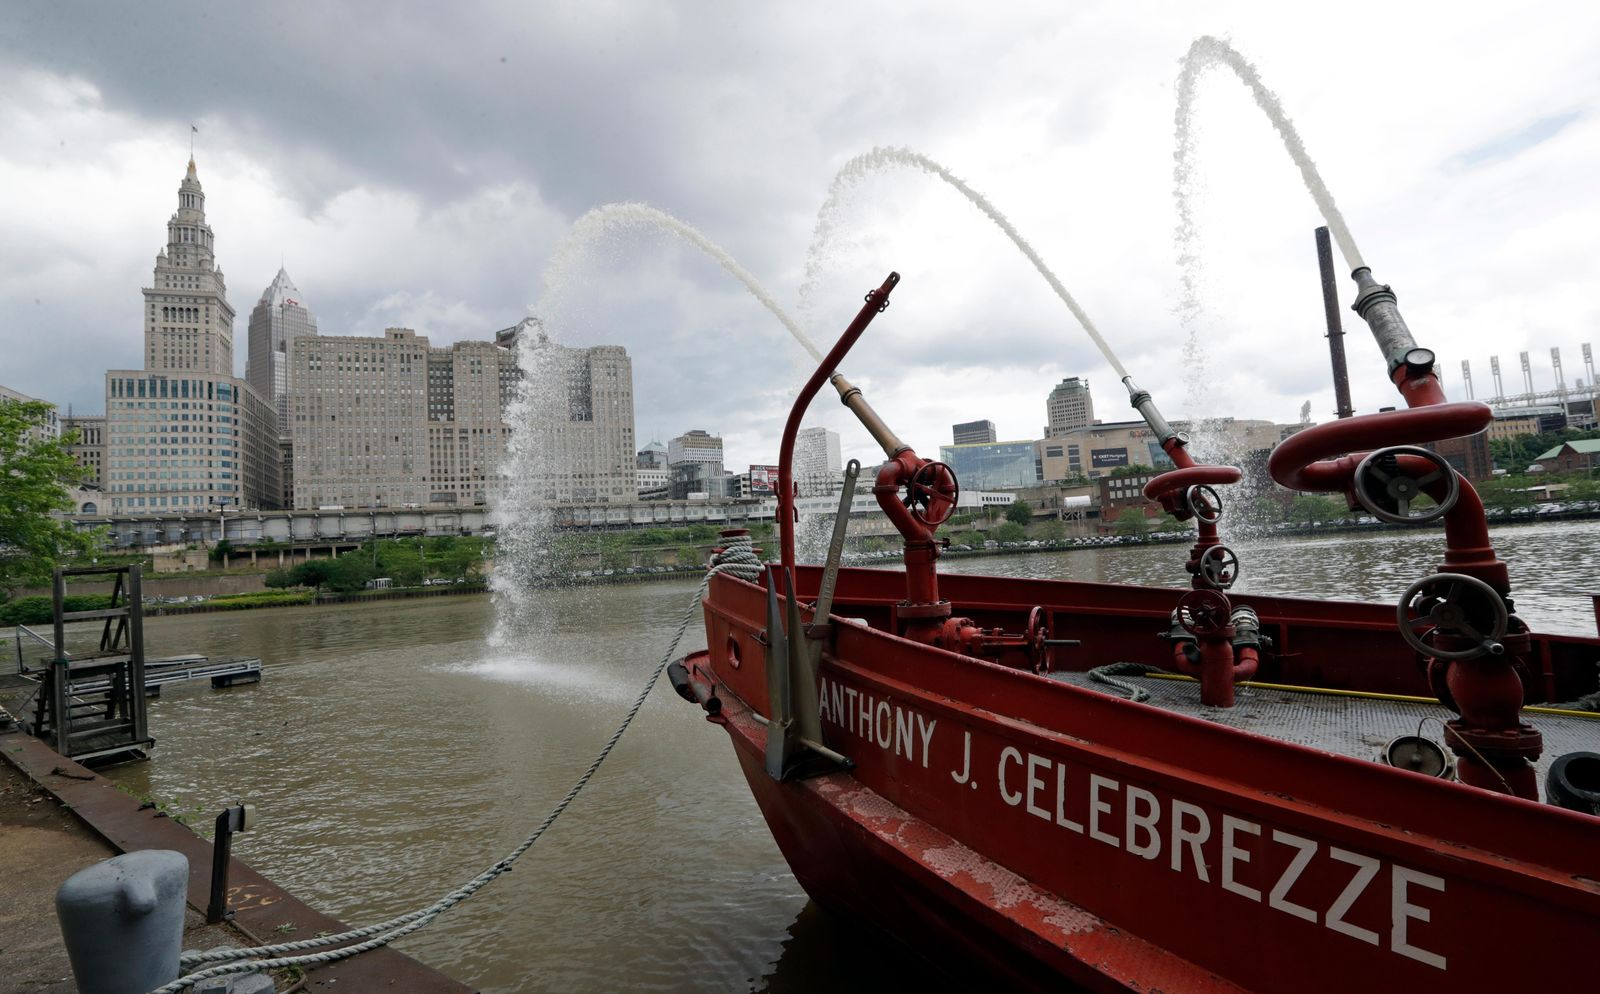 The Anthony J. Celebrezze rests near Fire Station 21 on the Cuyahoga River, Thursday, June 13, 2019, in Cleveland. Fire Station 21 battles the fires on the Cuyahoga River. The Celebrezze extinguished hot spots on a railroad bridge torched by burning fluids and debris on the Cuyahoga in 1969. (AP Photo/Tony Dejak)